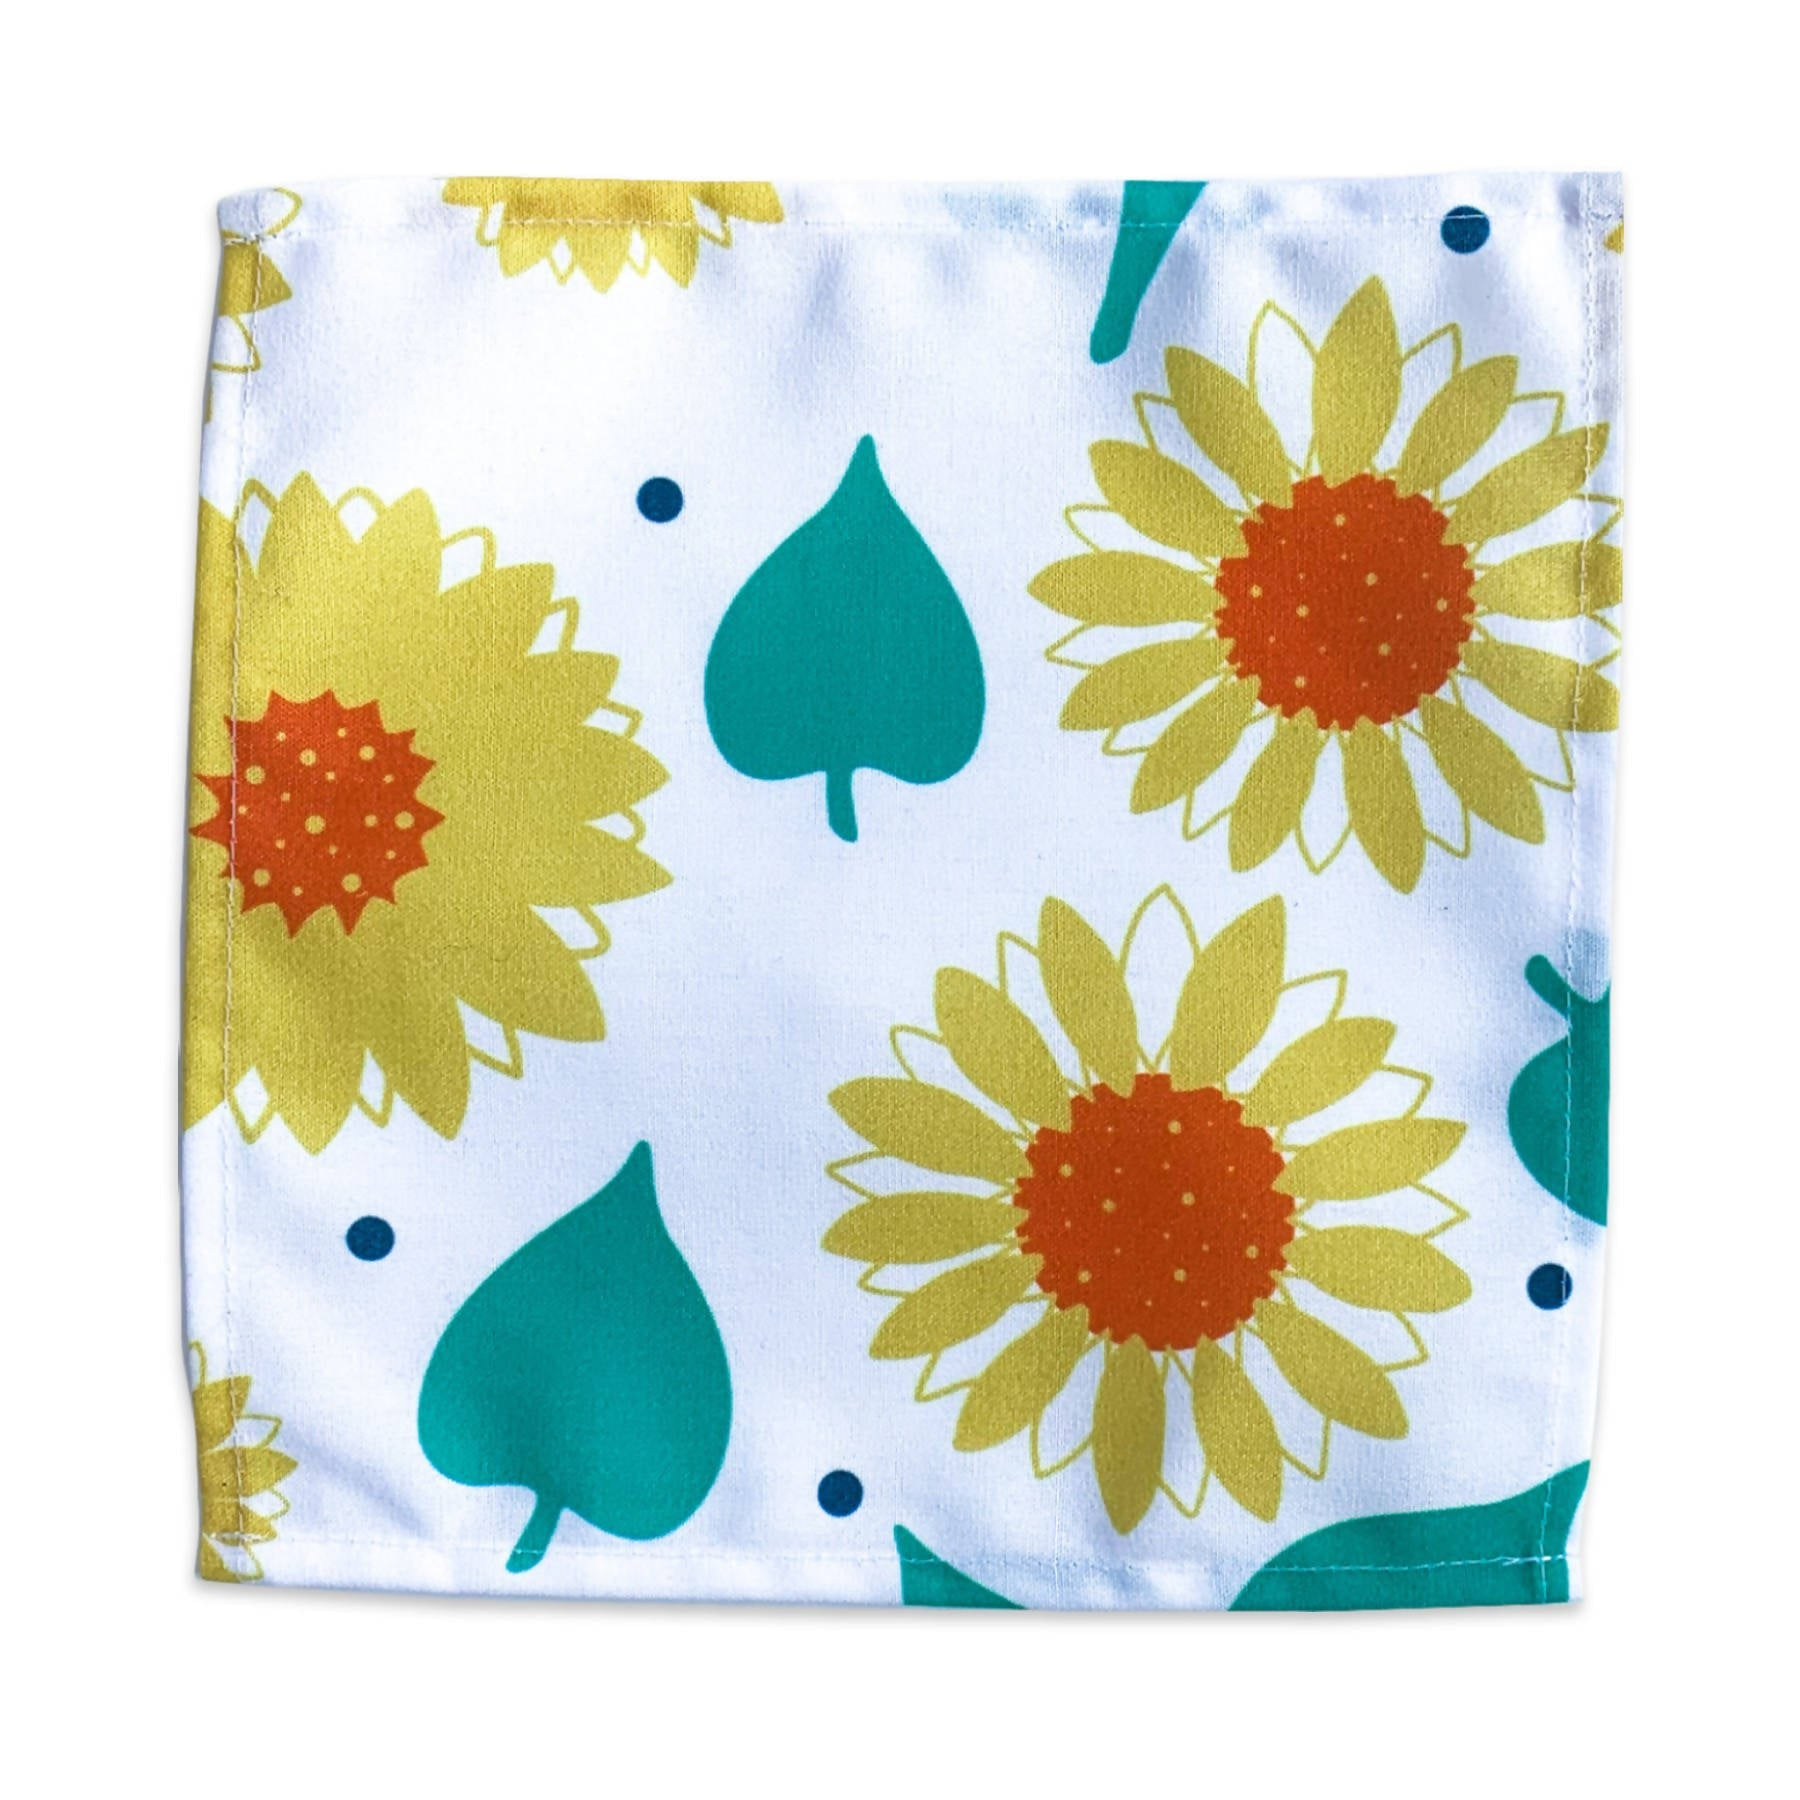 Dinner Napkin - Sunflowers & Leaves